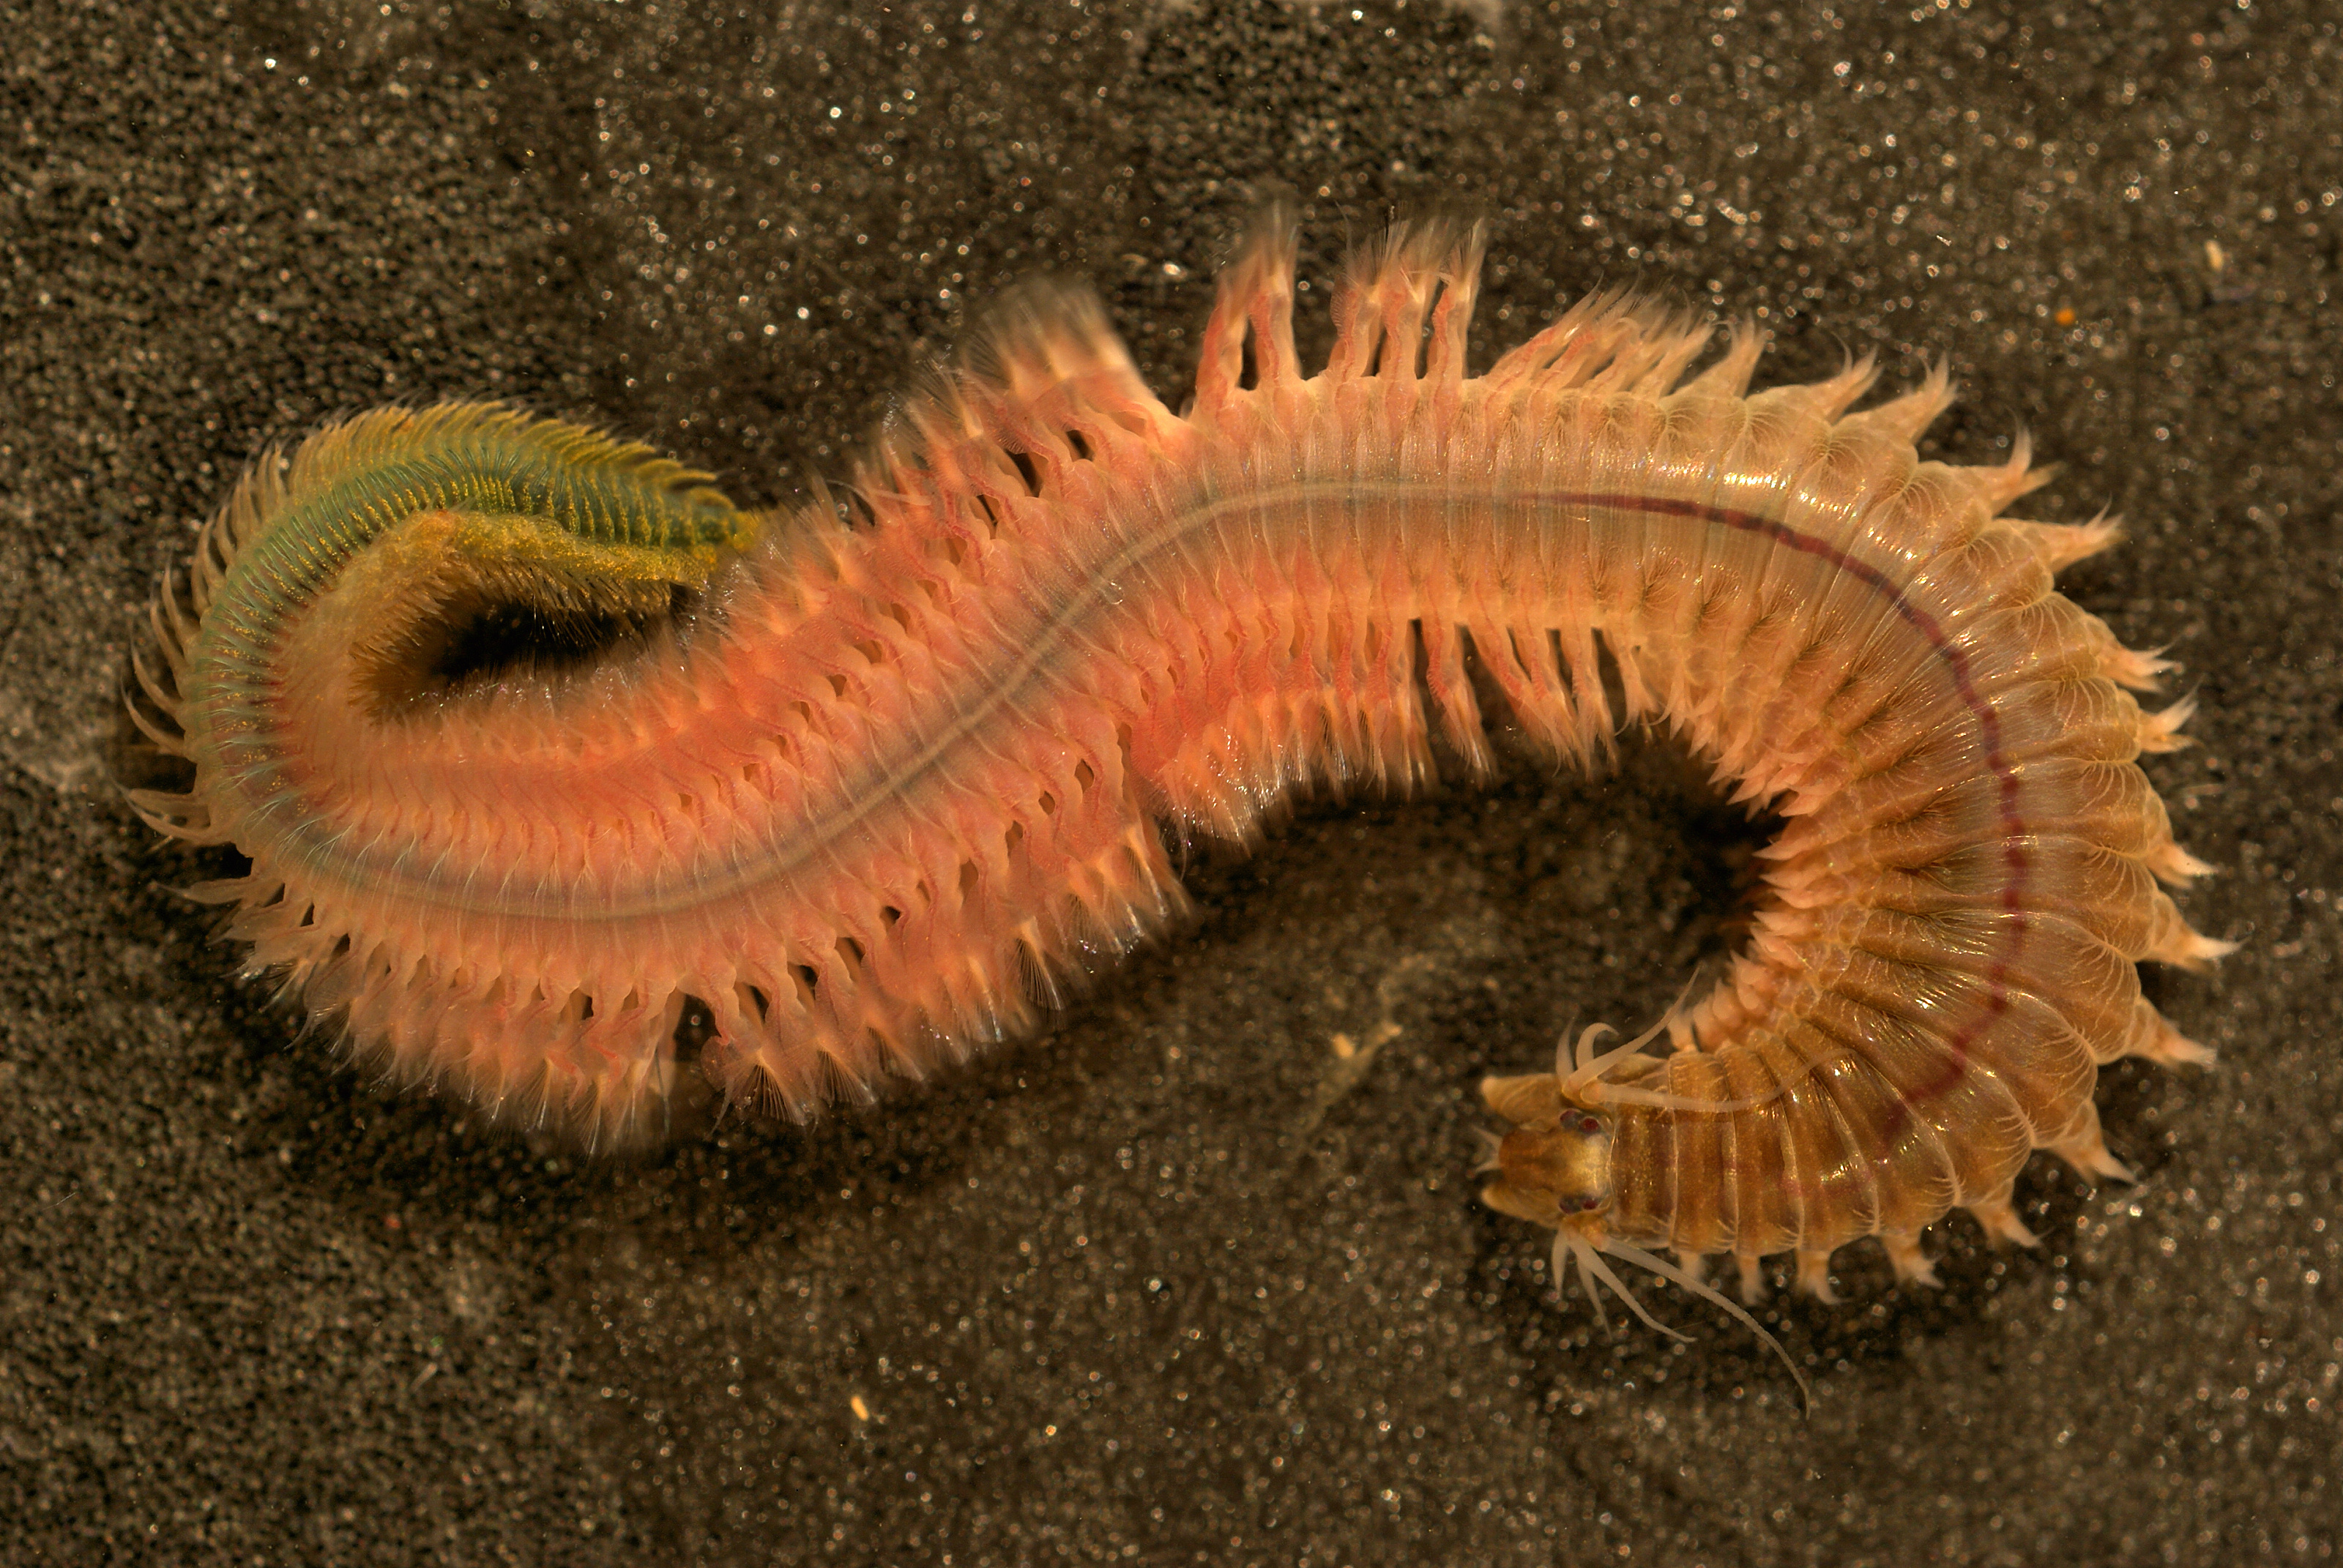 Image of Pile worm